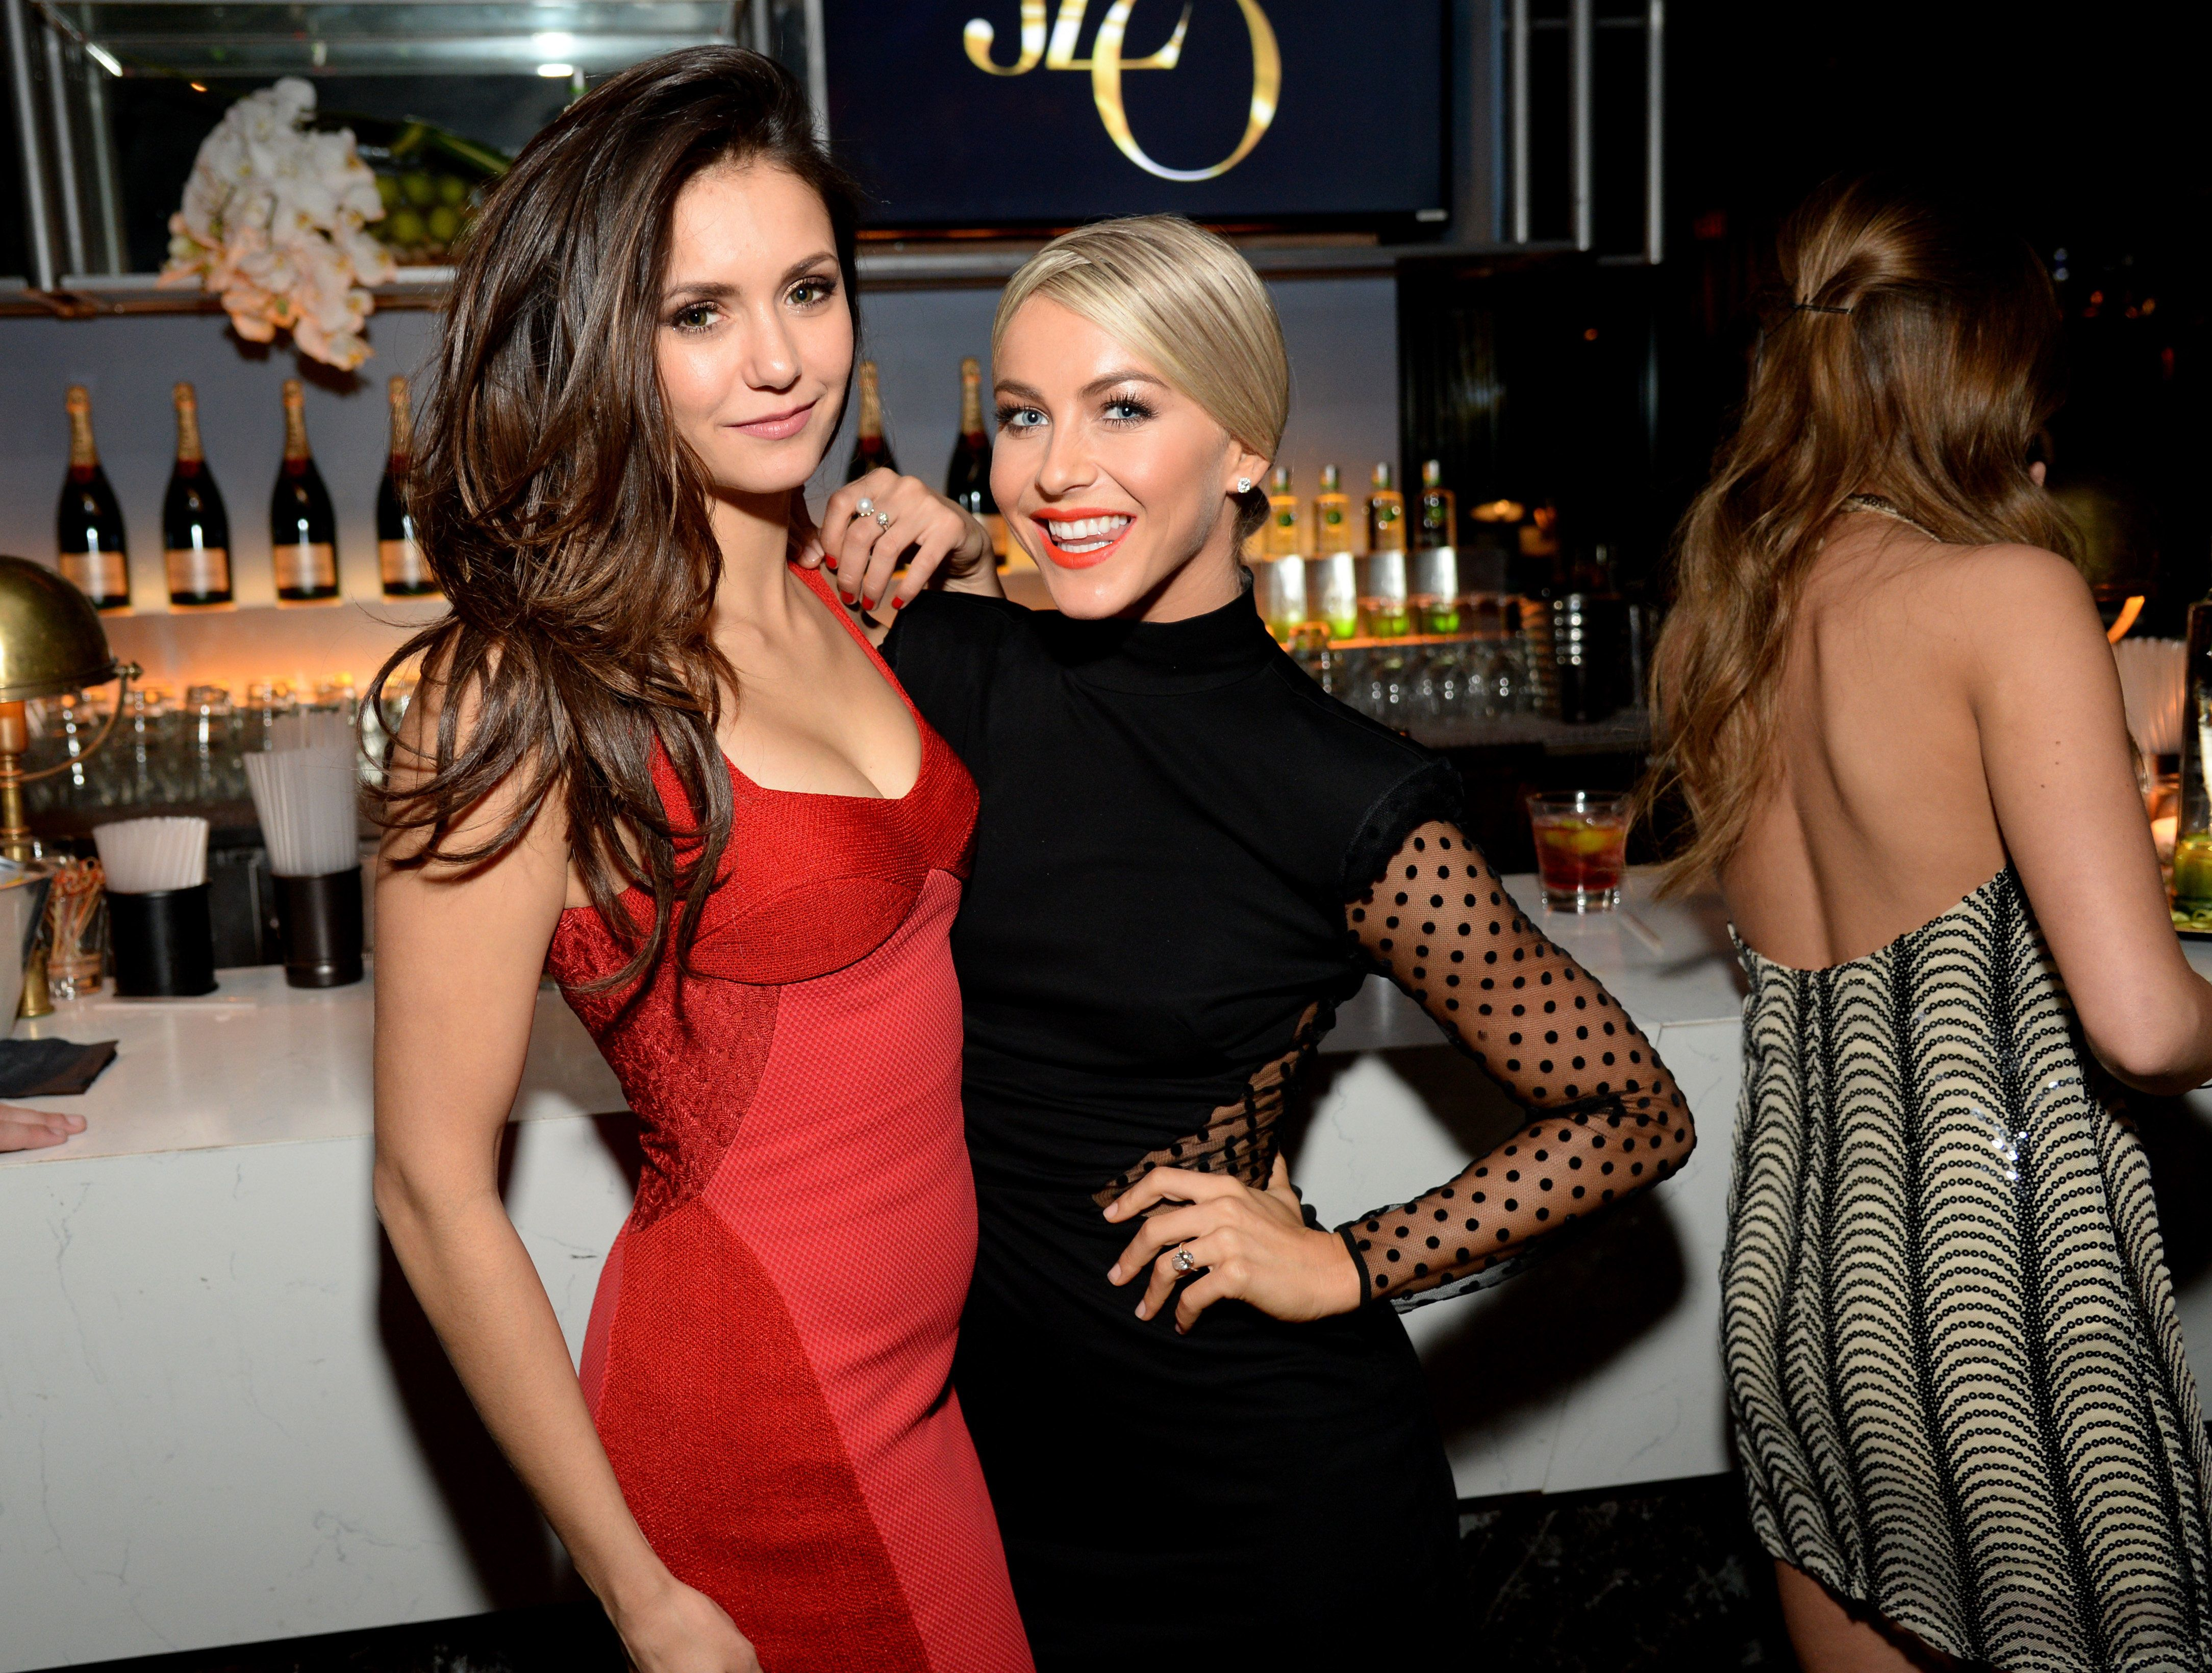 WEST HOLLYWOOD, CA - NOVEMBER 22:  Nina Dobrev and Julianne Hough attend the Moet & Chandon AMA After Party with Jennifer Lopez at HYDE Sunset: Kitchen + Cocktails on November 22, 2015 in West Hollywood, California.  (Photo by Michael Kovac/Getty Images for Moet & Chandon)